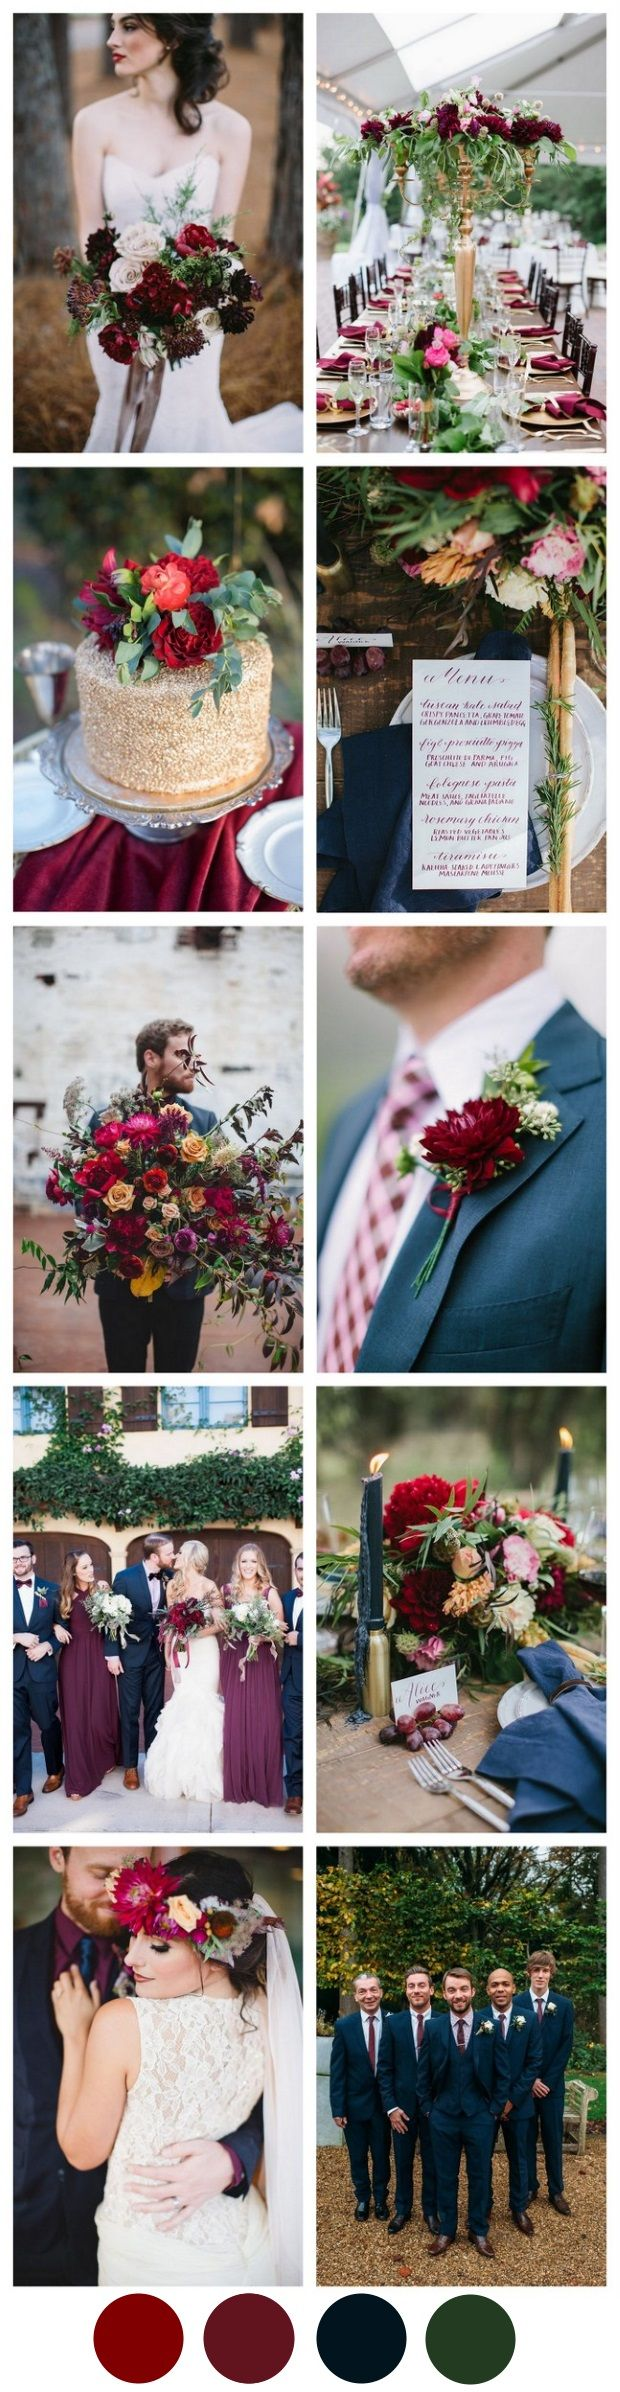 We're not finished with summer quite yet, but that doesn't mean we can't have a little peek at autumn weddings! Let's start with a romantic, elegant inspiration palette of marsala and navy!